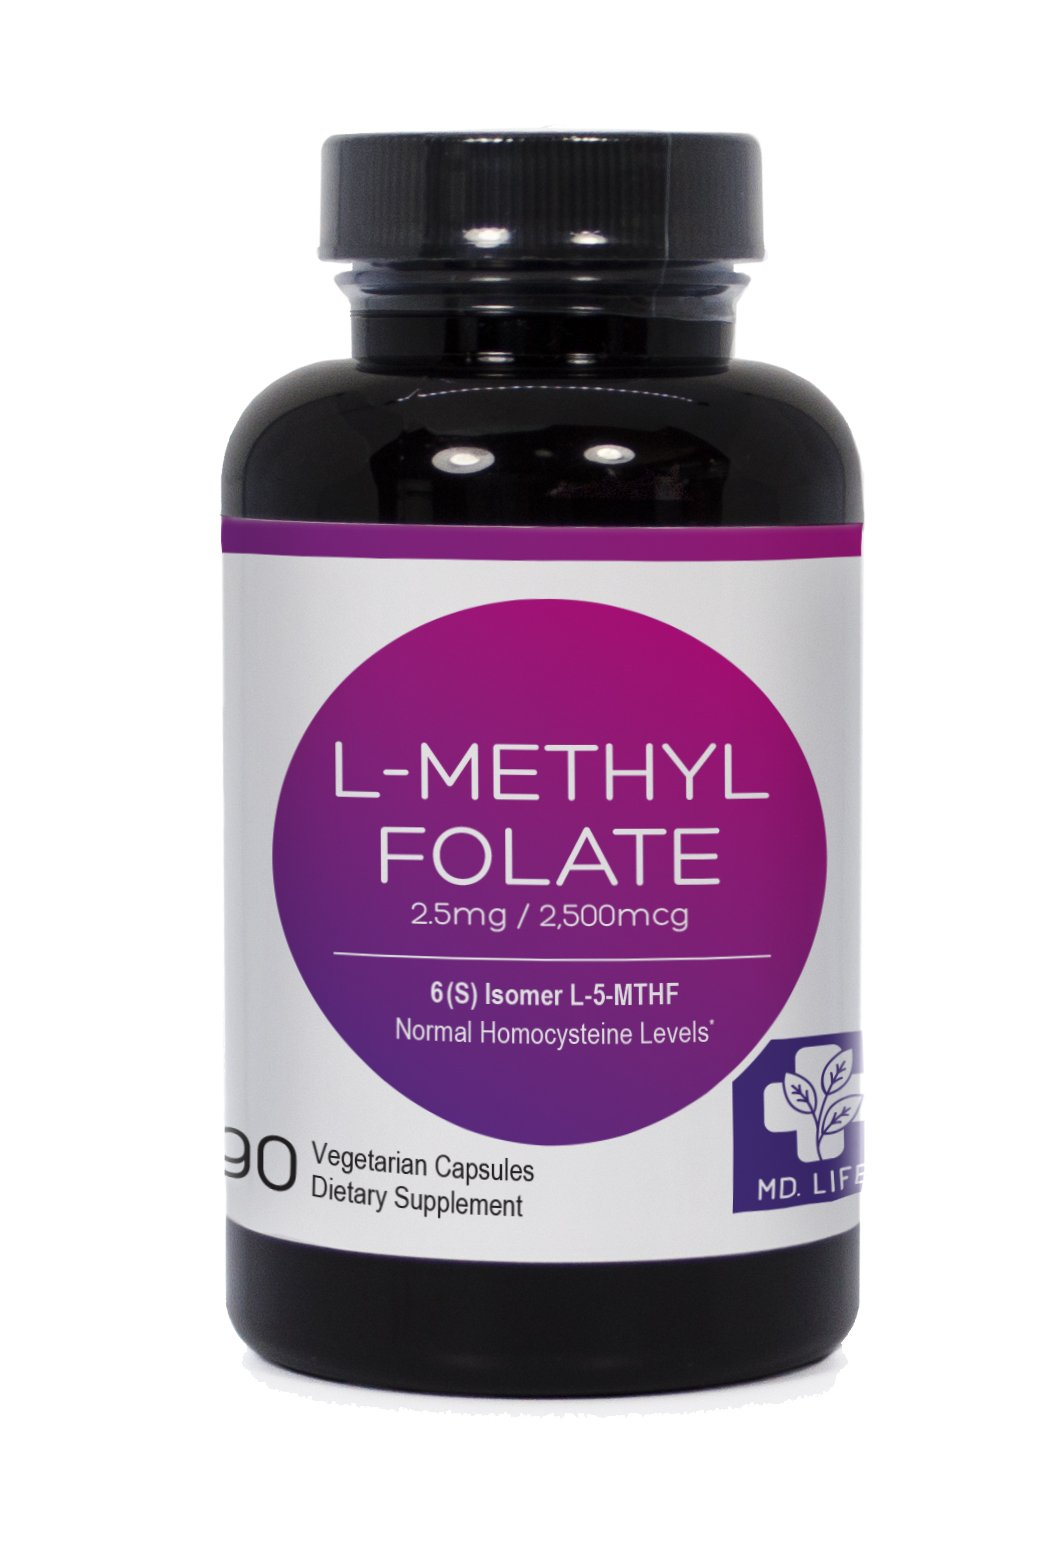 MD.LIFE 5-MTHF L-Methylfolate 2.5 MG 2500 mcg Professional Strength Active Folate 90 Capsules